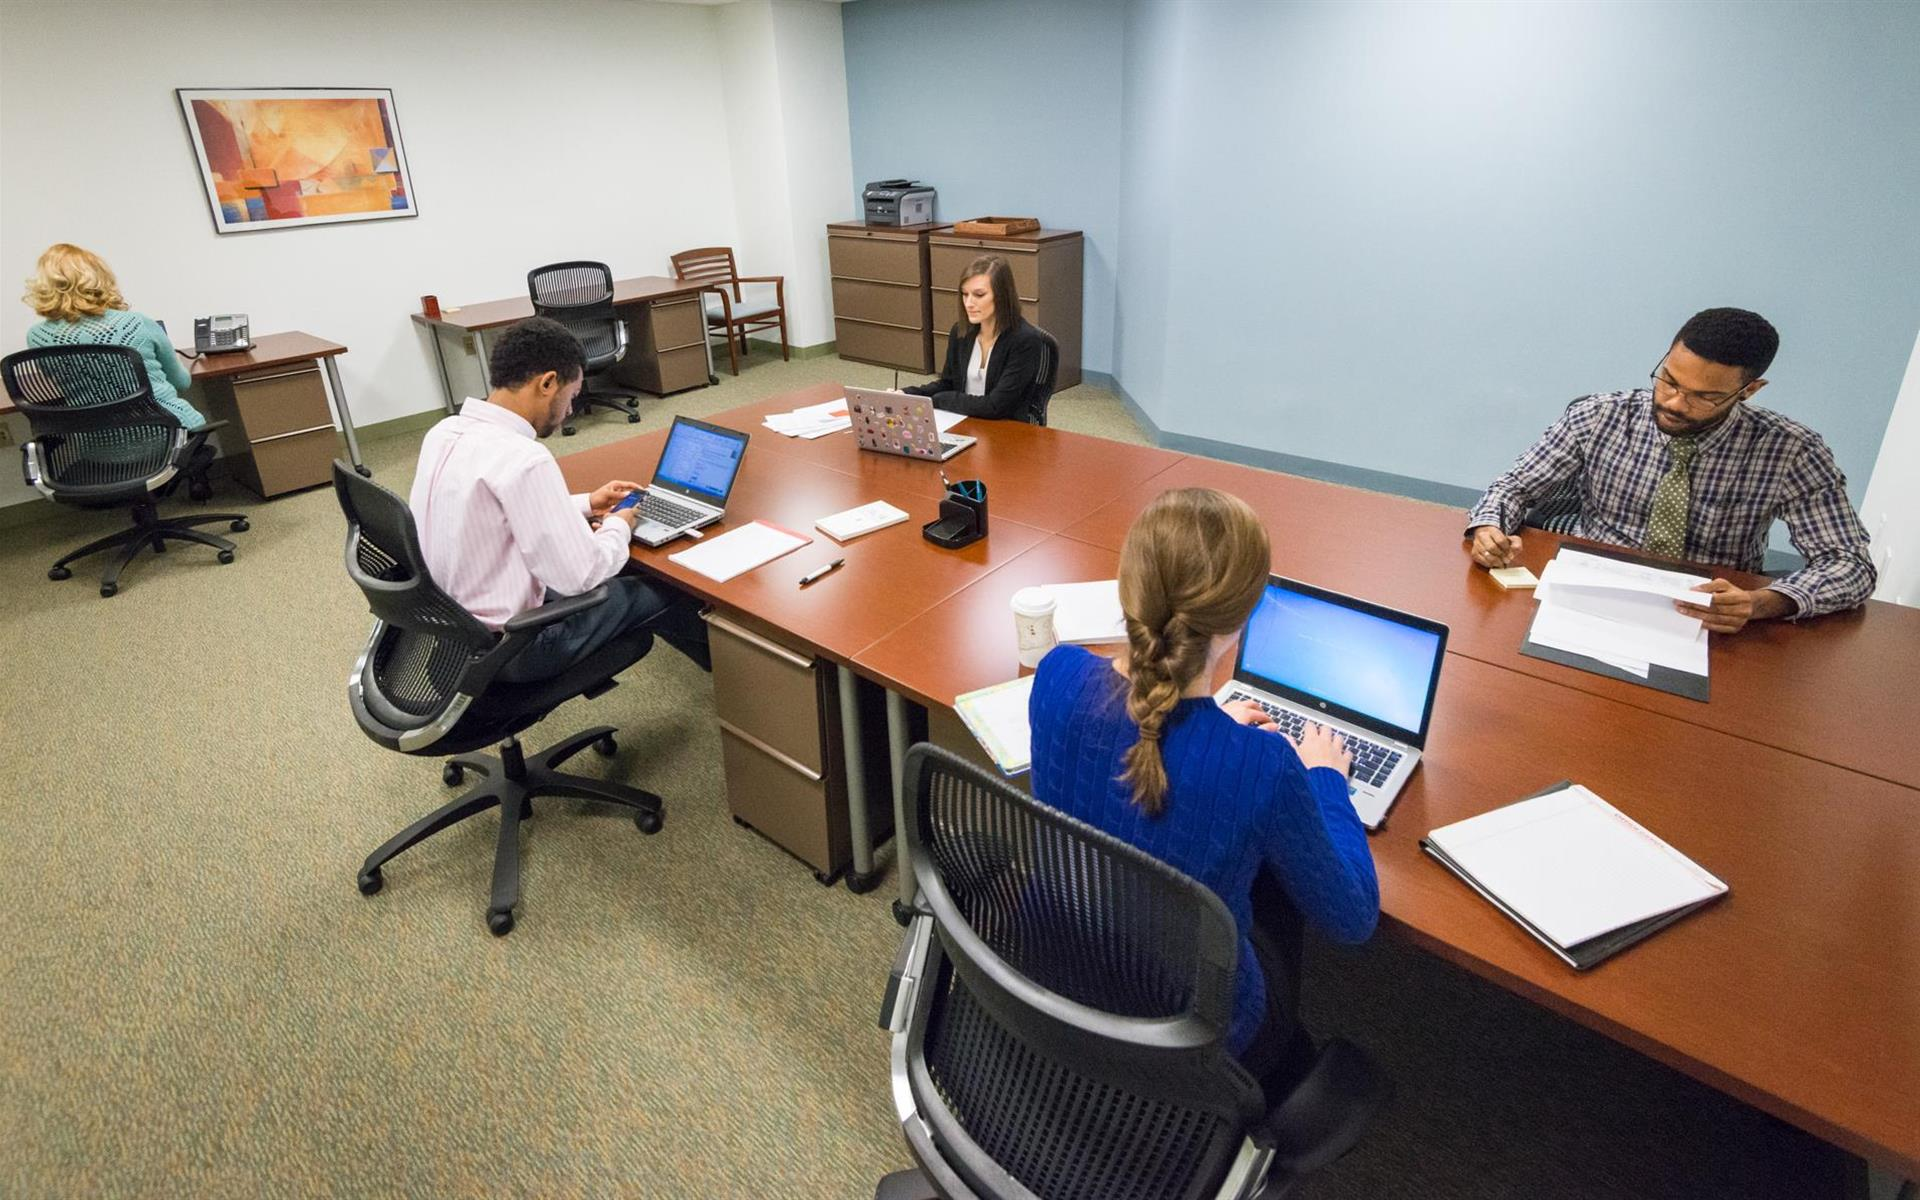 Carr Workplaces - Bethesda - Office 251 - Interior Team Room